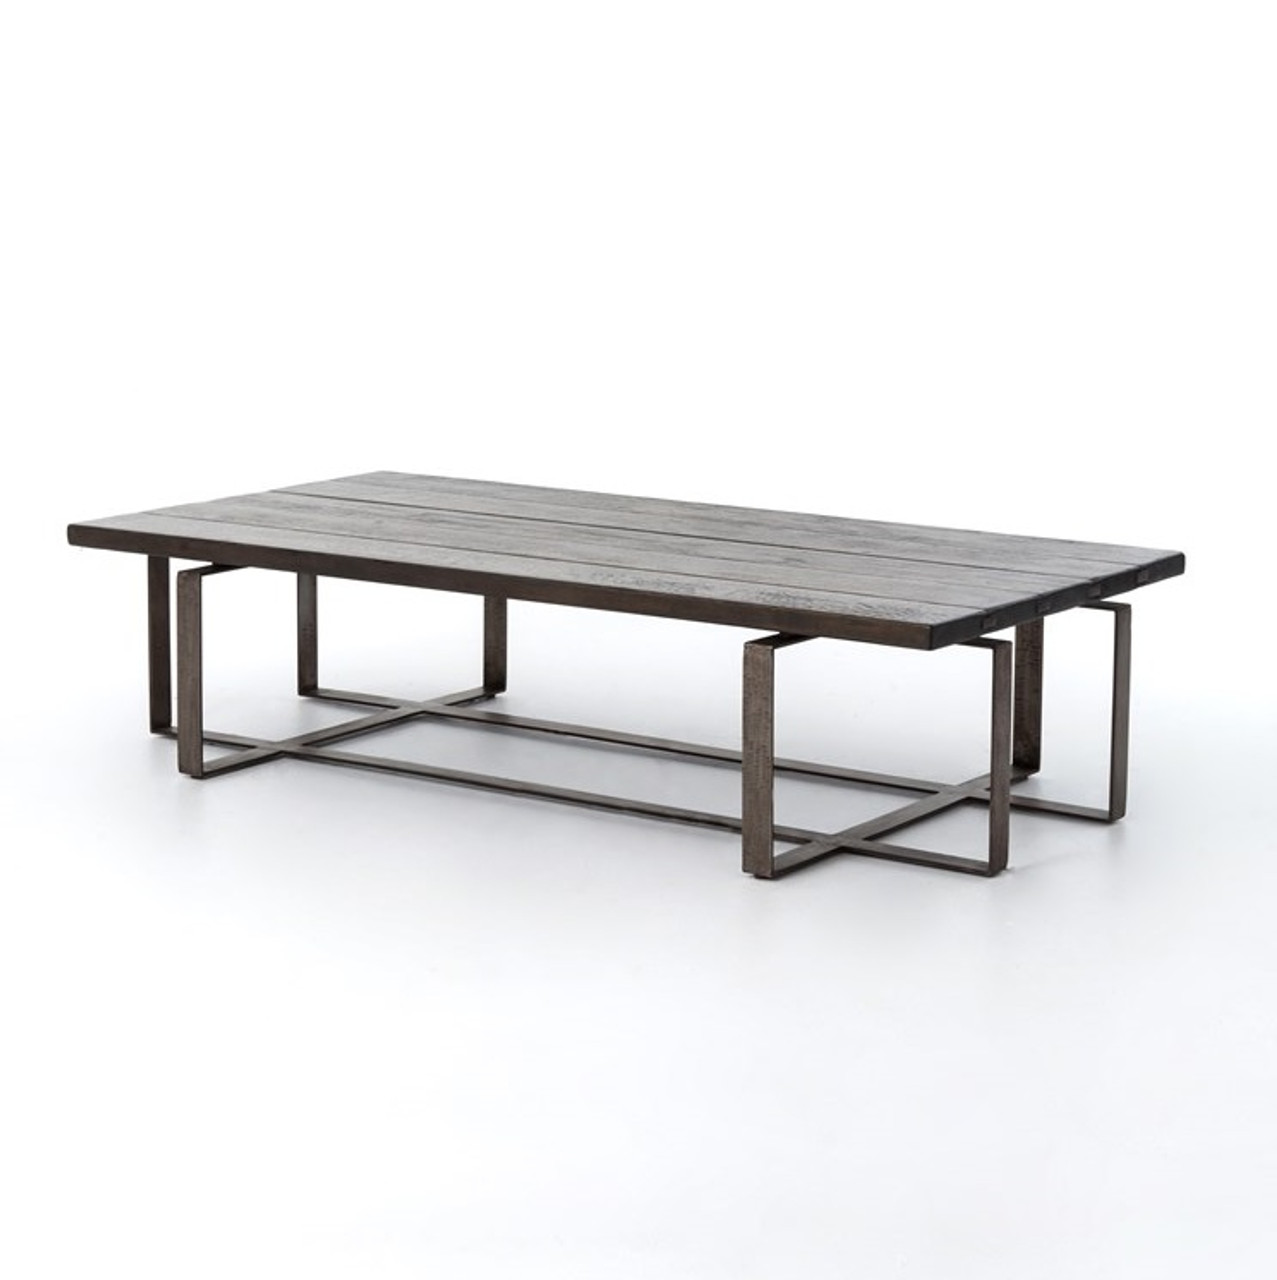 Brant Large Coffee Table With Geometric Wrought Iron Base Zin Home